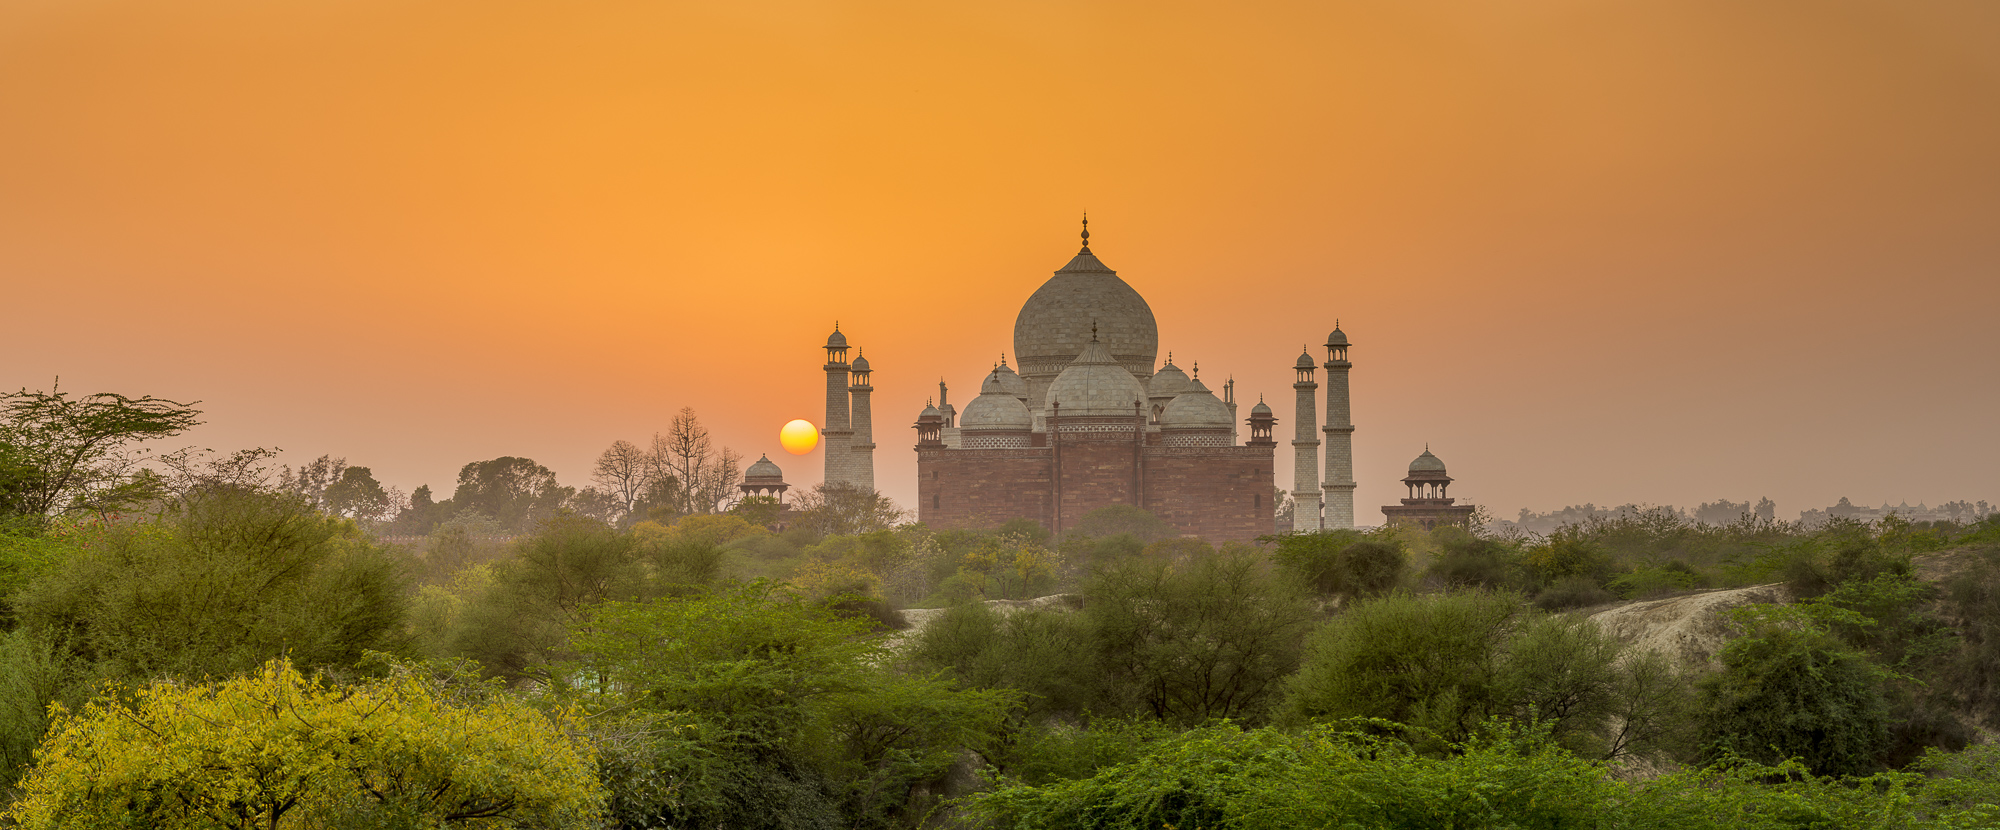 Taj Mahal at Sunset, Agra, Uttar Pradesh, India